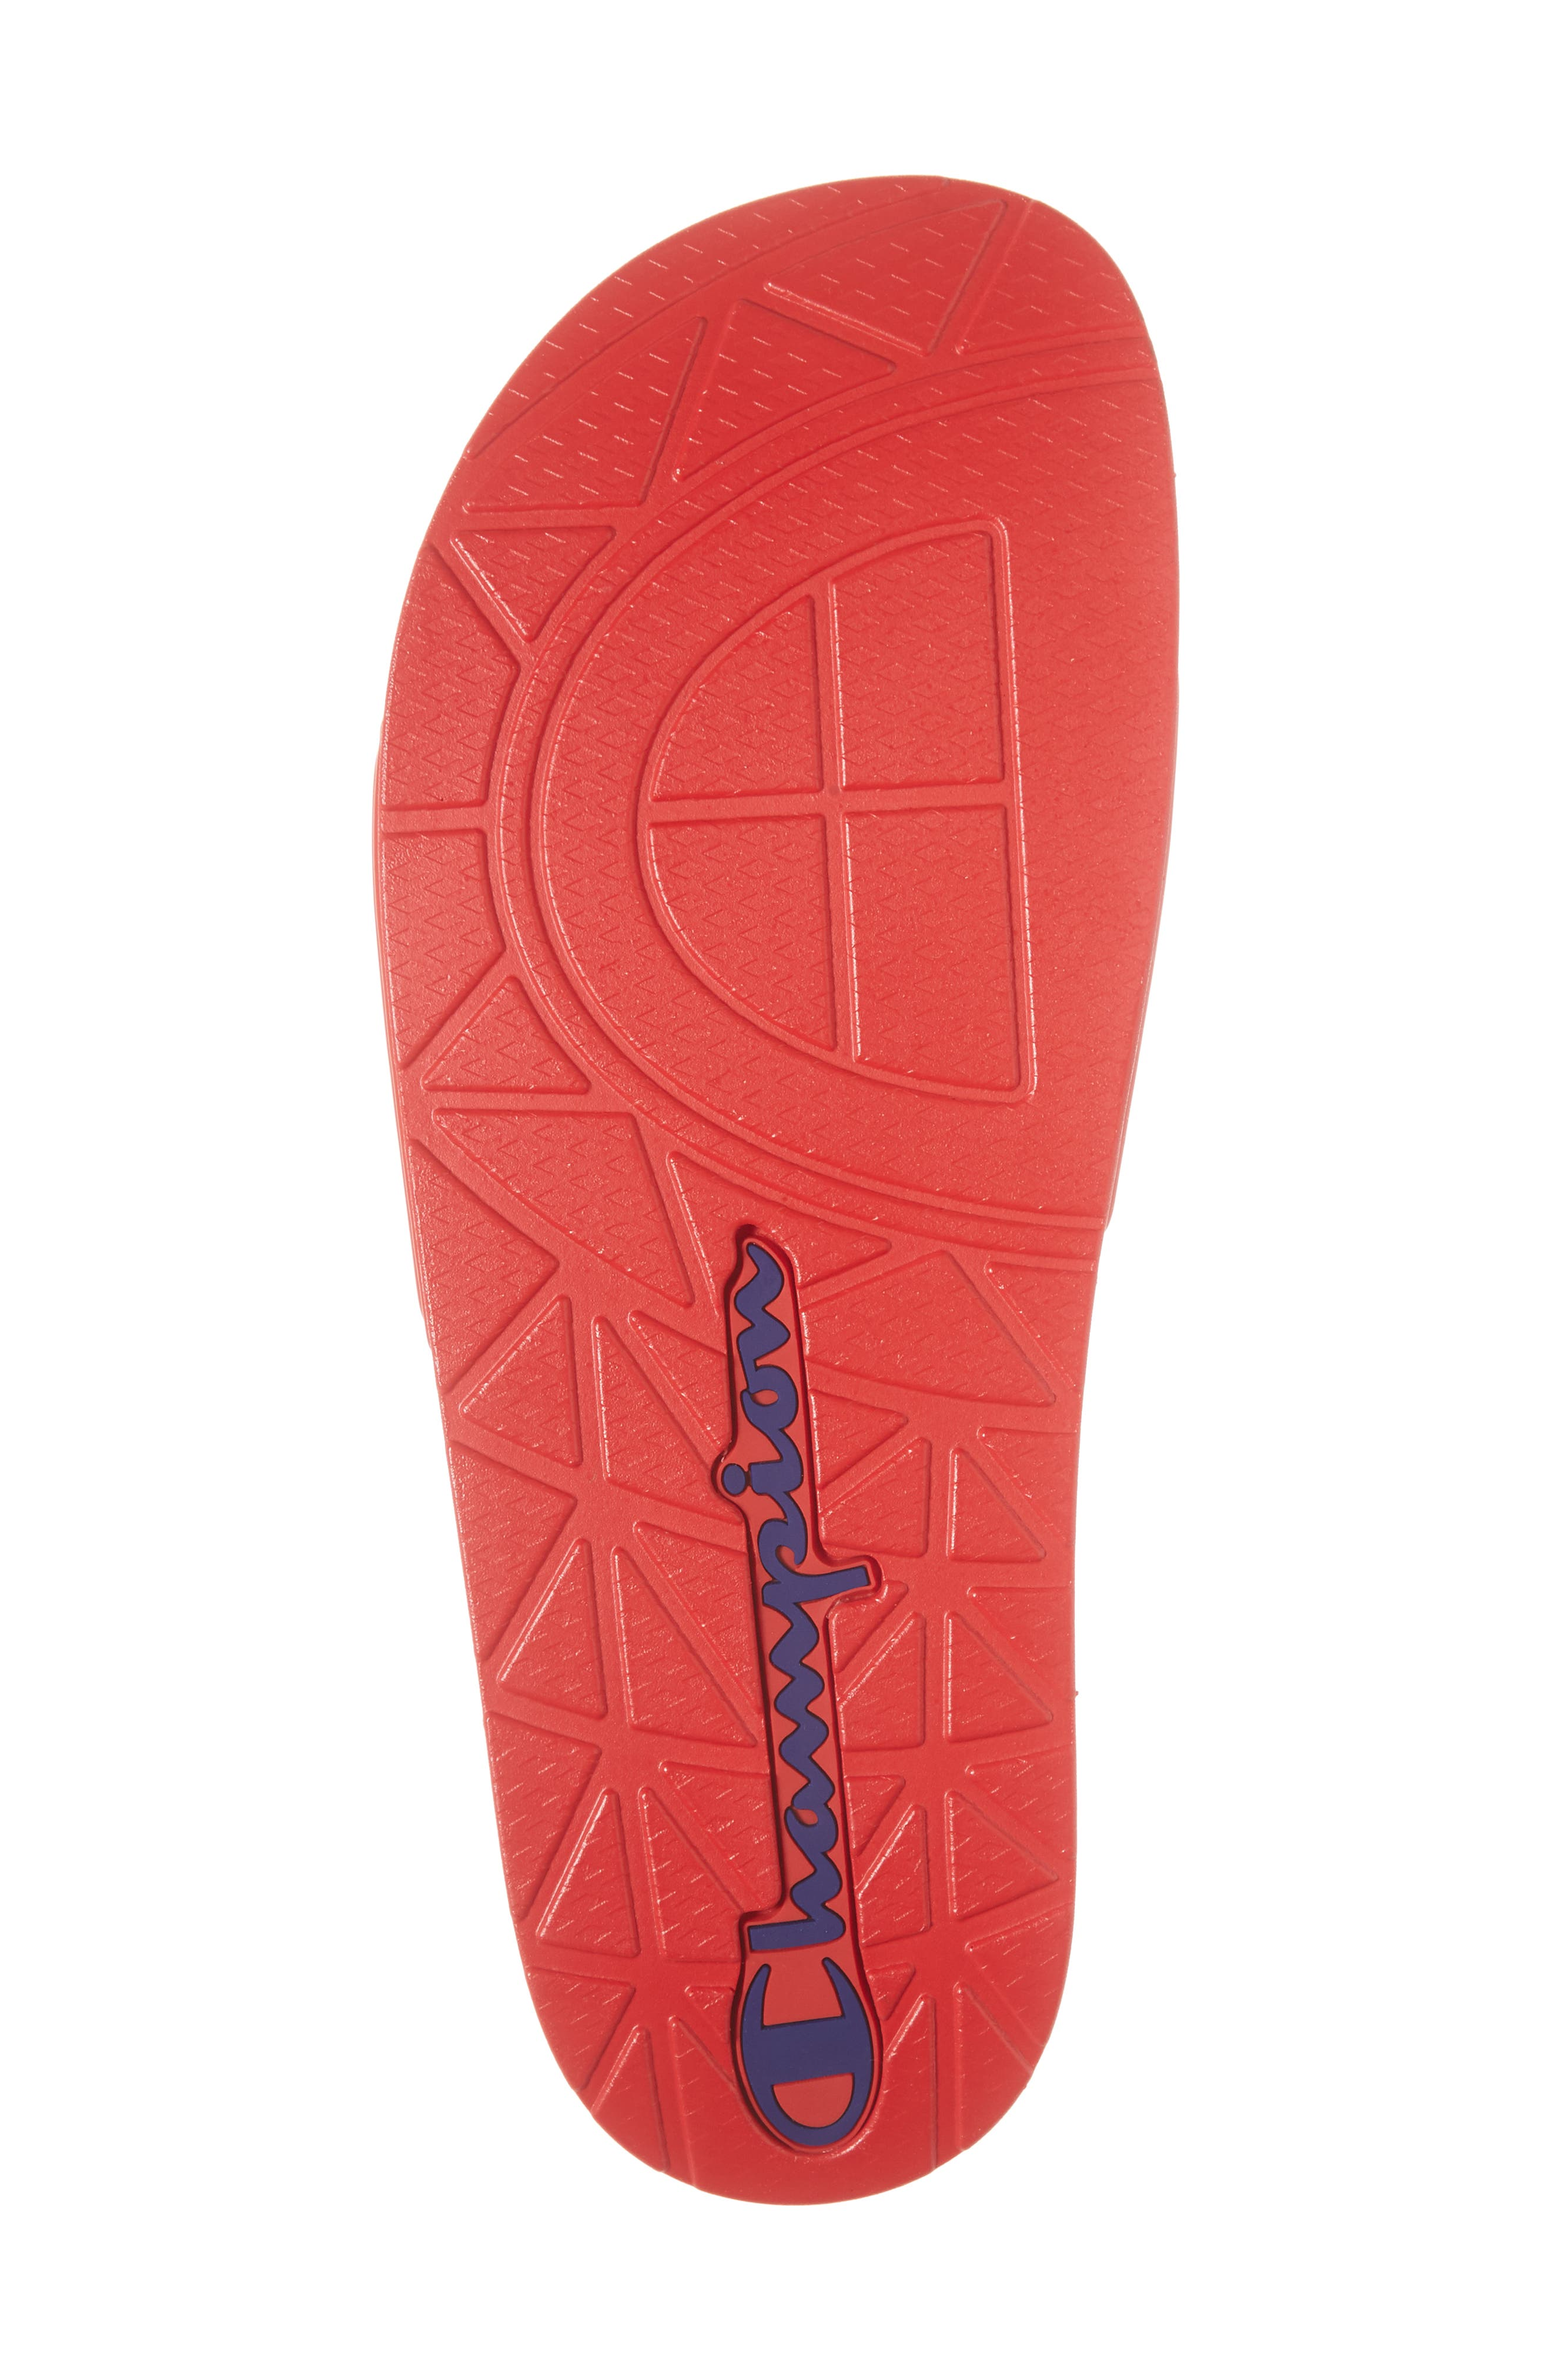 IPO Sports Slide,                             Alternate thumbnail 6, color,                             RED